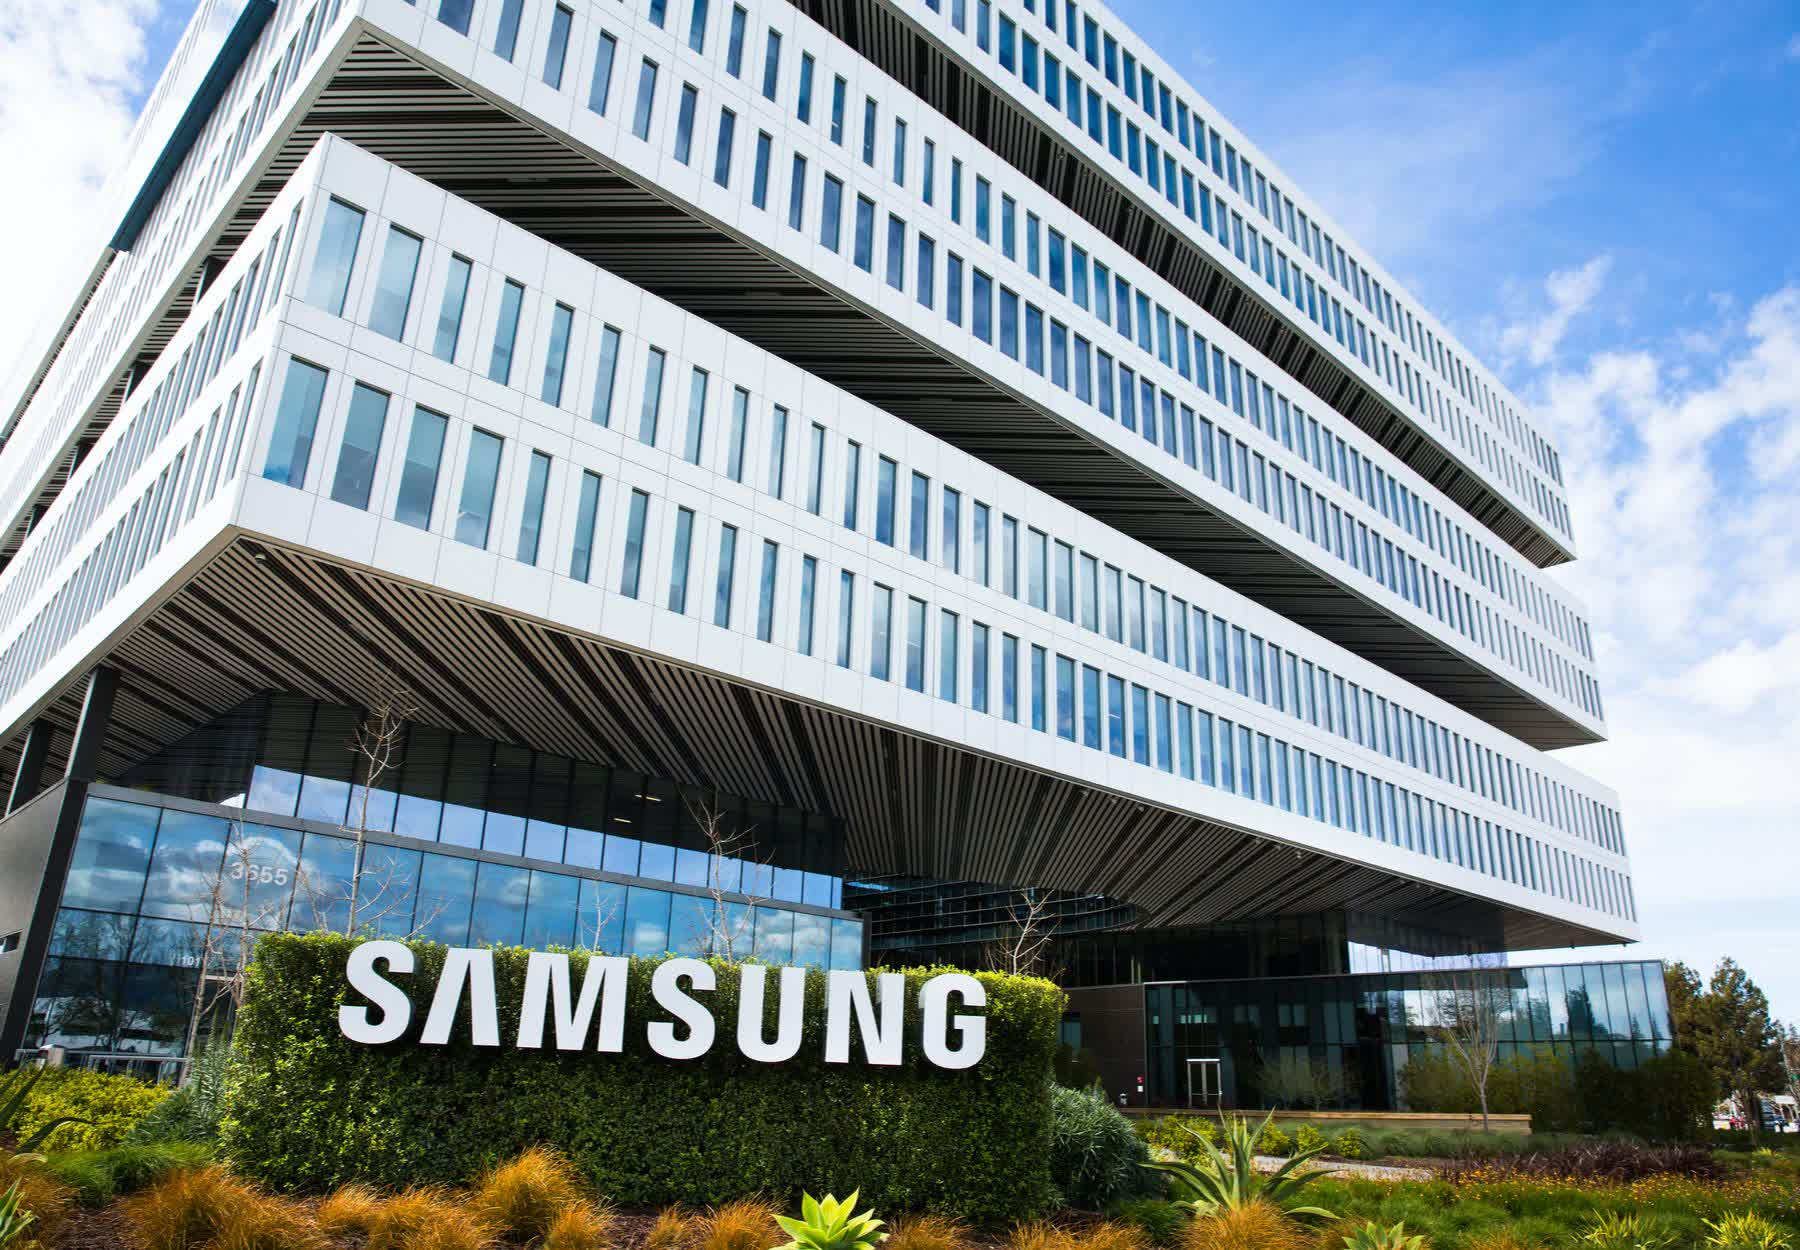 Samsung will host a second Galaxy Unpacked event on October 20